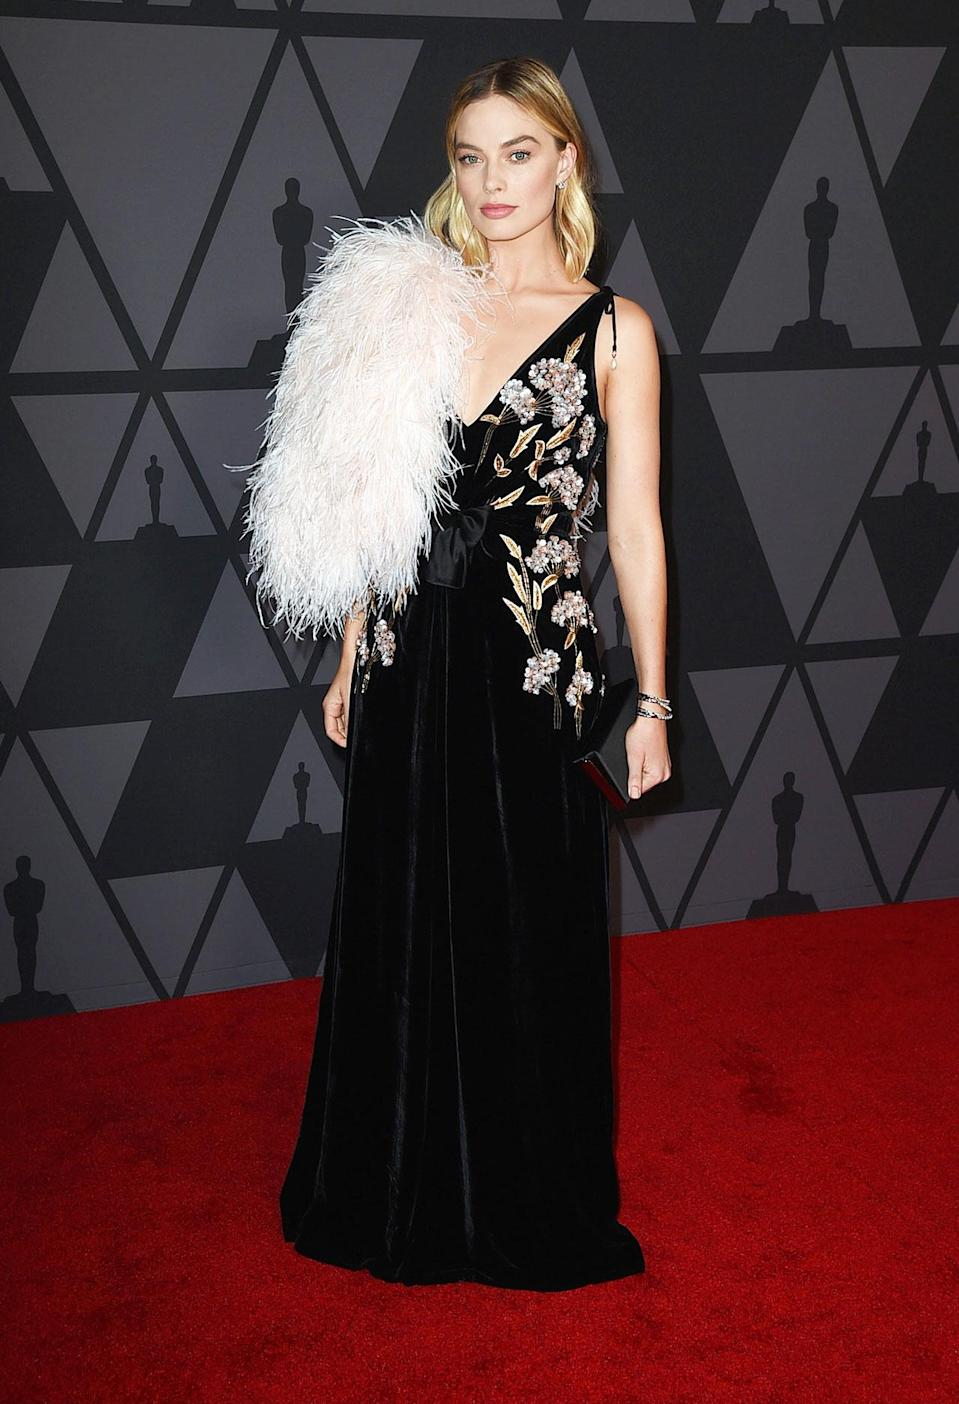 """<a rel=""""nofollow noopener"""" href=""""http://boxofstyle.thezoereport.com/"""" target=""""_blank"""" data-ylk=""""slk:Rachel Zoe Clutch for Box of Style, Rachel ZoeAt the Academy of Motion Picture Arts and Sciences' 9th Annual Governors Awards, Los Angeles, 2017."""" class=""""link rapid-noclick-resp"""">Rachel Zoe Clutch for Box of Style, Rachel Zoe<p>At the Academy of Motion Picture Arts and Sciences' 9th Annual Governors Awards, Los Angeles, 2017.</p> </a><a rel=""""nofollow noopener"""" href=""""http://boxofstyle.thezoereport.com/"""" target=""""_blank"""" data-ylk=""""slk:Winter 2017 Box of Style, Rachel ZoeAt the Academy of Motion Picture Arts and Sciences' 9th Annual Governors Awards, Los Angeles, 2017."""" class=""""link rapid-noclick-resp"""">Winter 2017 Box of Style, Rachel Zoe<p>At the Academy of Motion Picture Arts and Sciences' 9th Annual Governors Awards, Los Angeles, 2017.</p> </a>"""